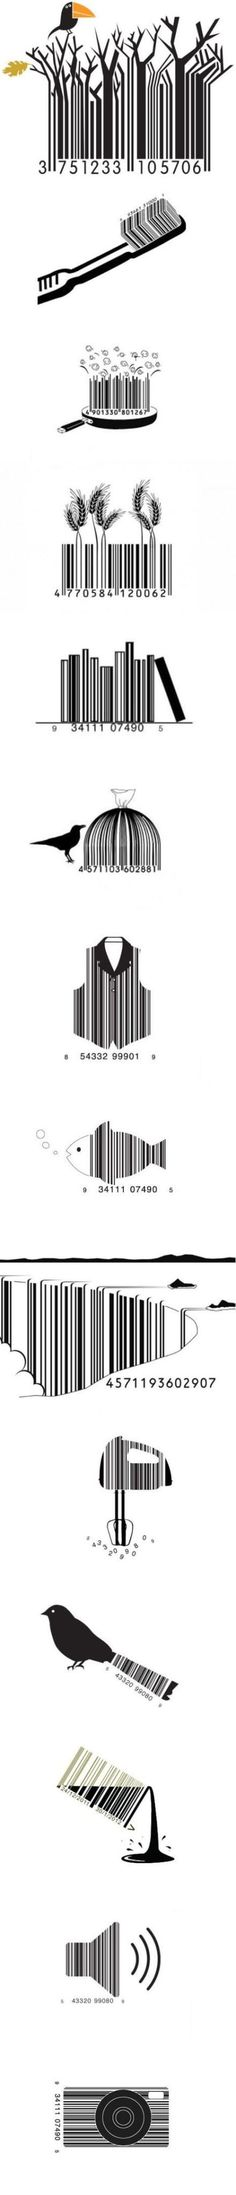 top 14 design of bar codes  So I've never seen bar code art before, but I think it give the concept and figure and ground pretty well.